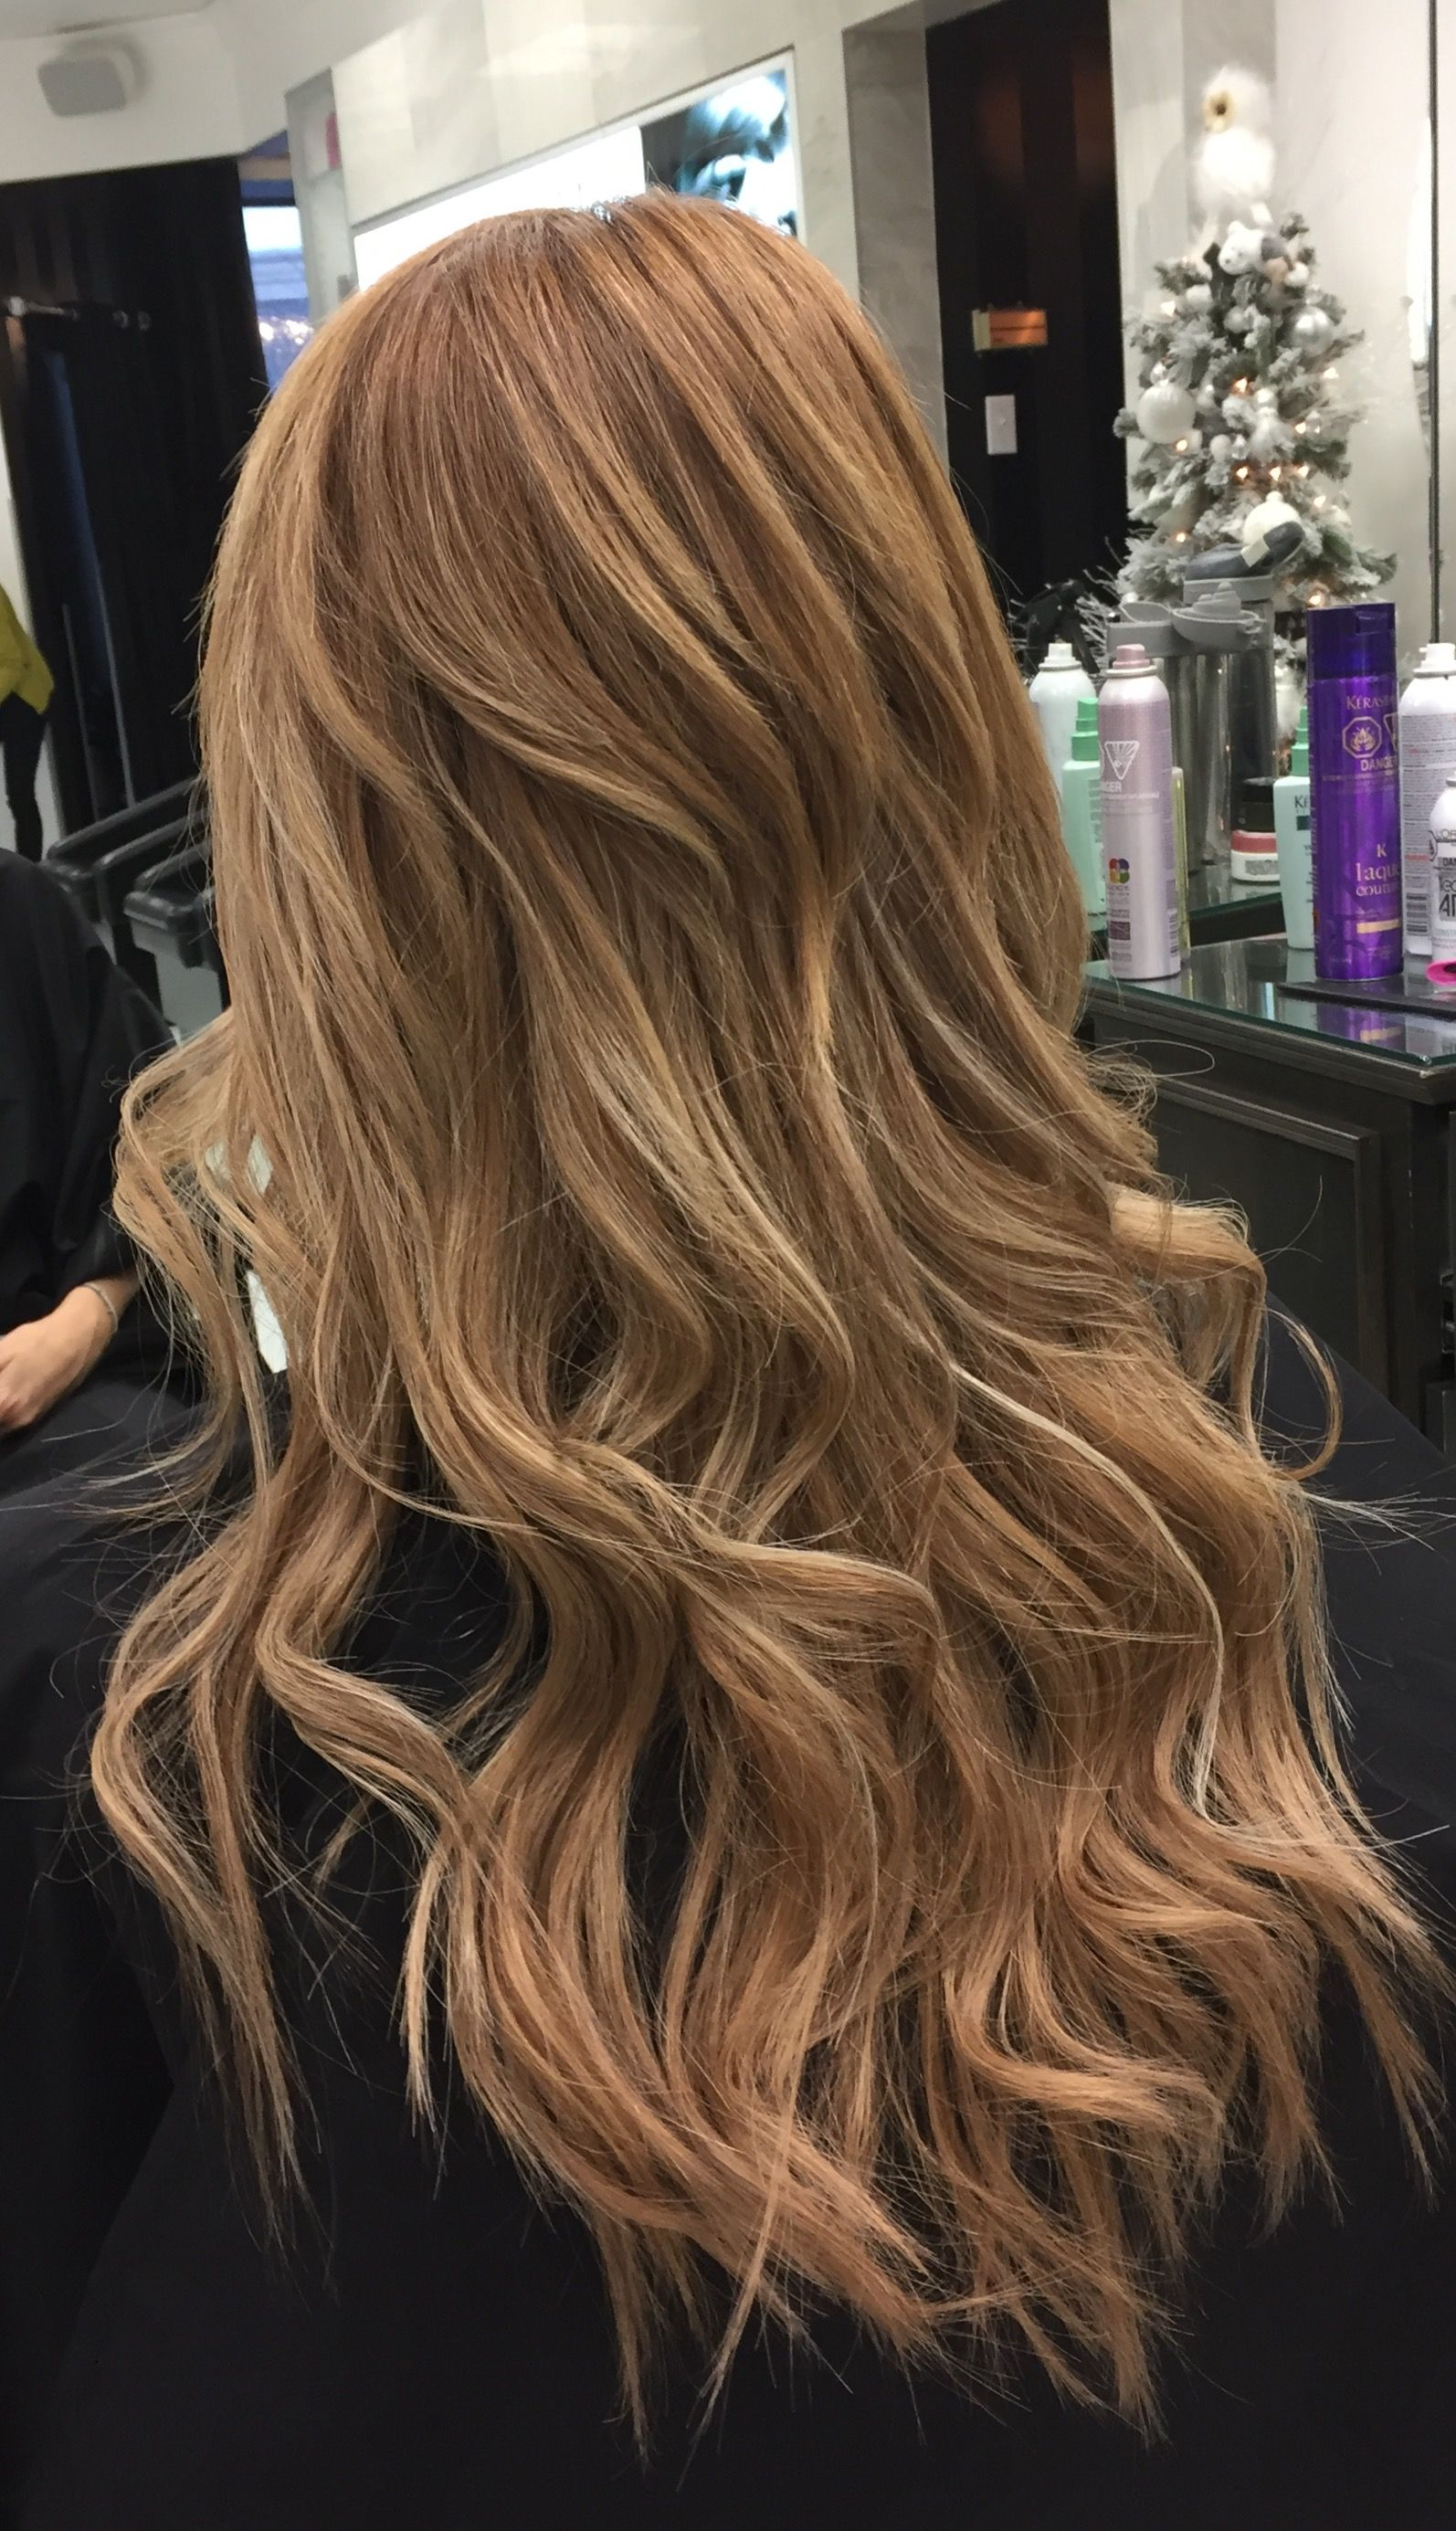 photo Blonde Hair Extensions Archives